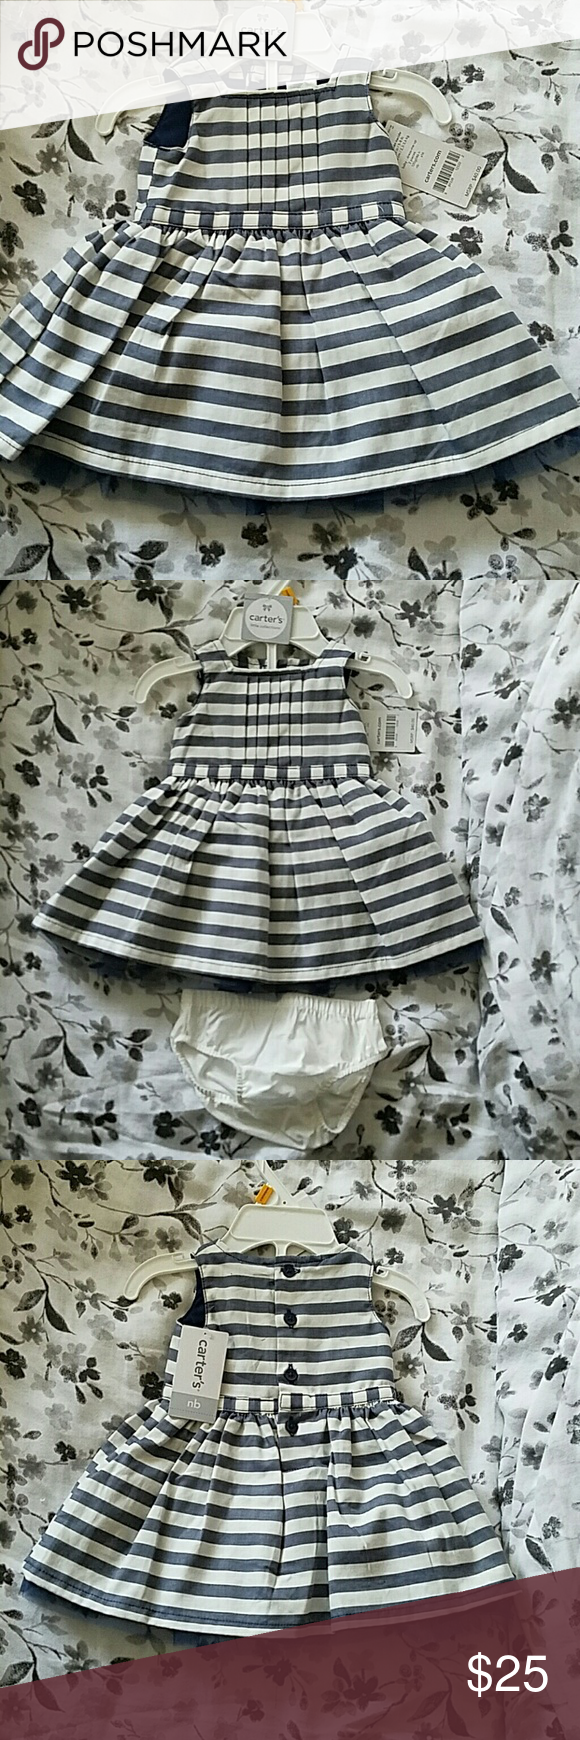 Blue and white striped dress Cute striped dress with navy tule underneath that extends from the bottom of the dress. Very cute dress for 1st pics, church, or give as a baby shower gift! Fits 5-8lbs and up to 21.5in. Carter's Dresses Formal